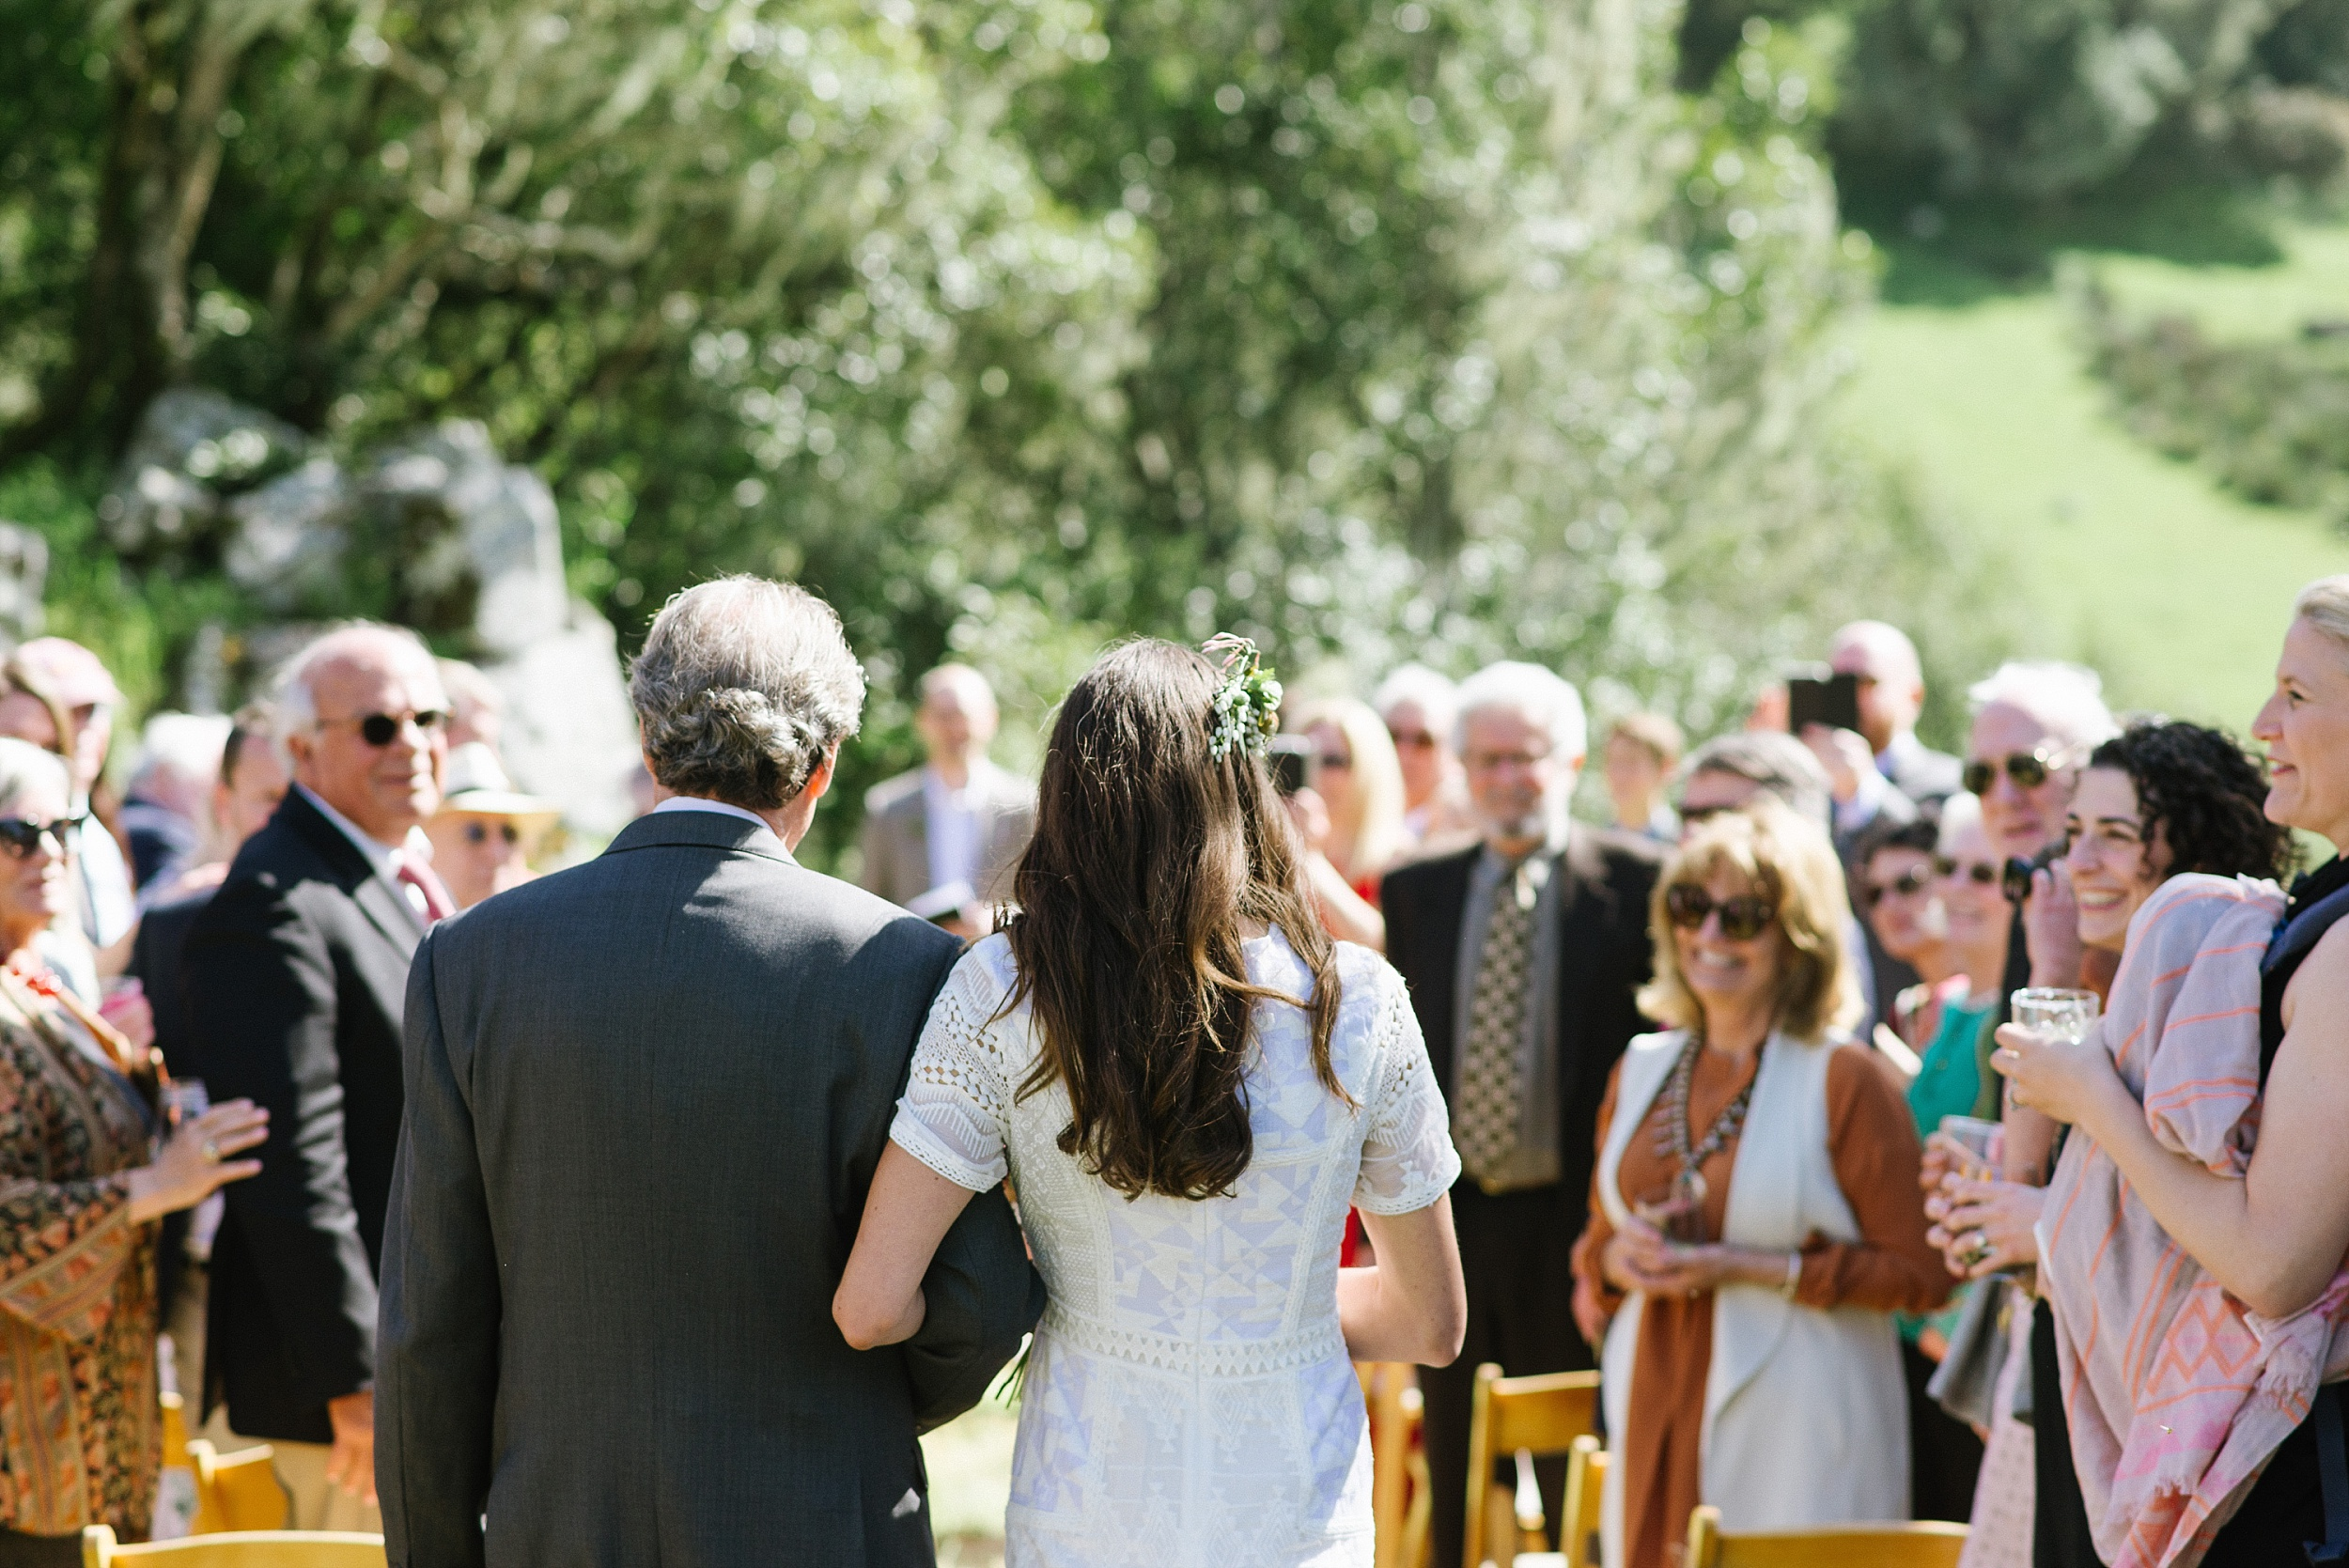 nicasio_backyard_intimate_wedding_chelseadierphotography_0064.jpg